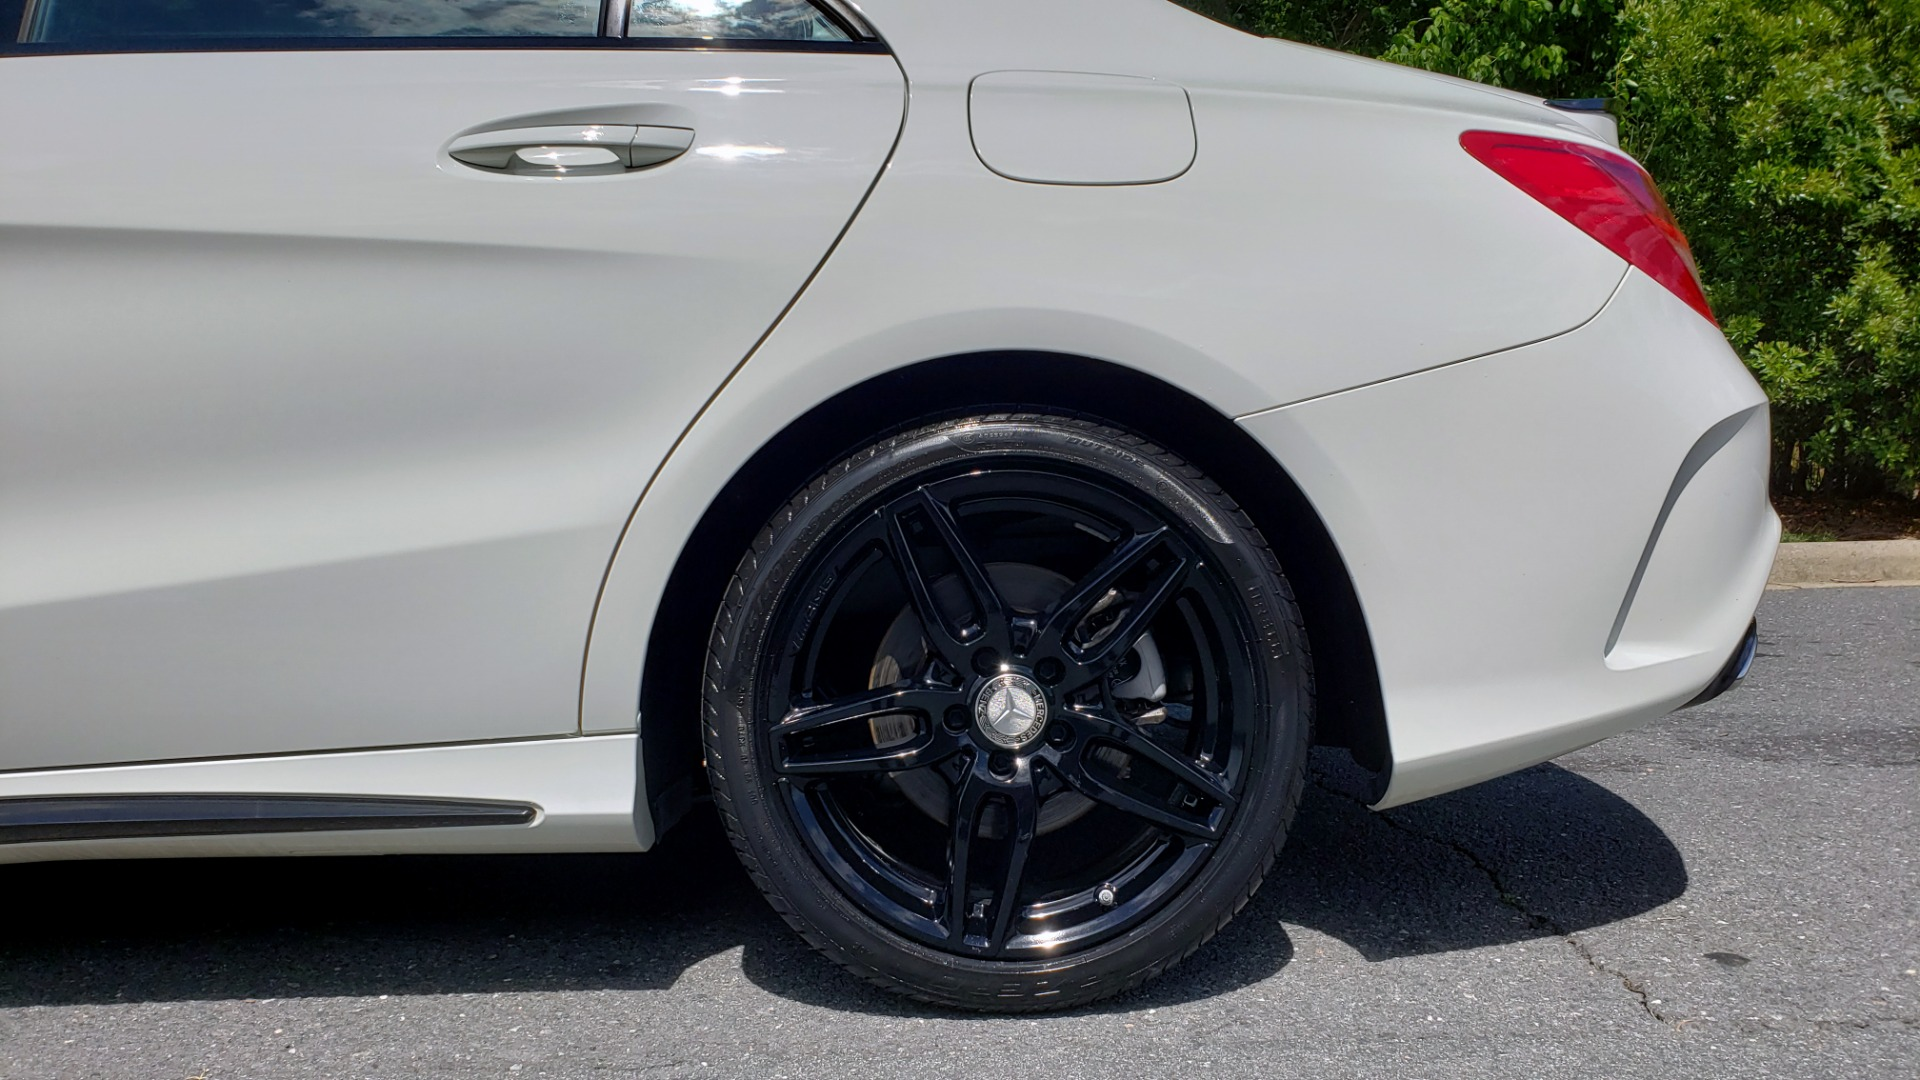 Used 2017 Mercedes-Benz CLA 250 4MATIC / SPORT / PREMIUM / MULTI MEDIA / NIGHT PKG / PANO-ROOF for sale Sold at Formula Imports in Charlotte NC 28227 81